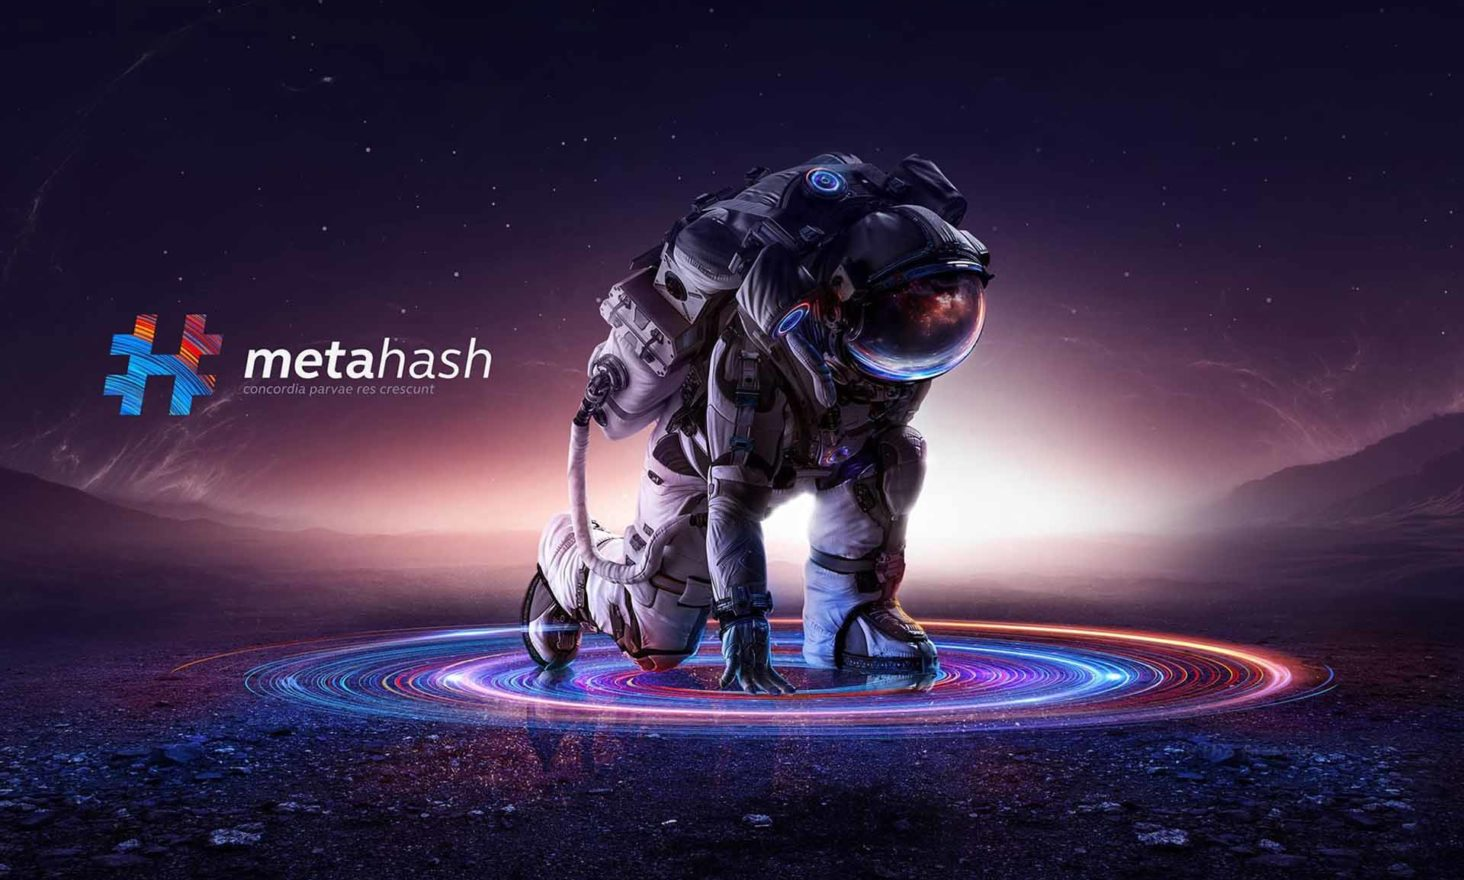 #MetaHash: A Revolutionary Payment and Decentralized Data Storage System?